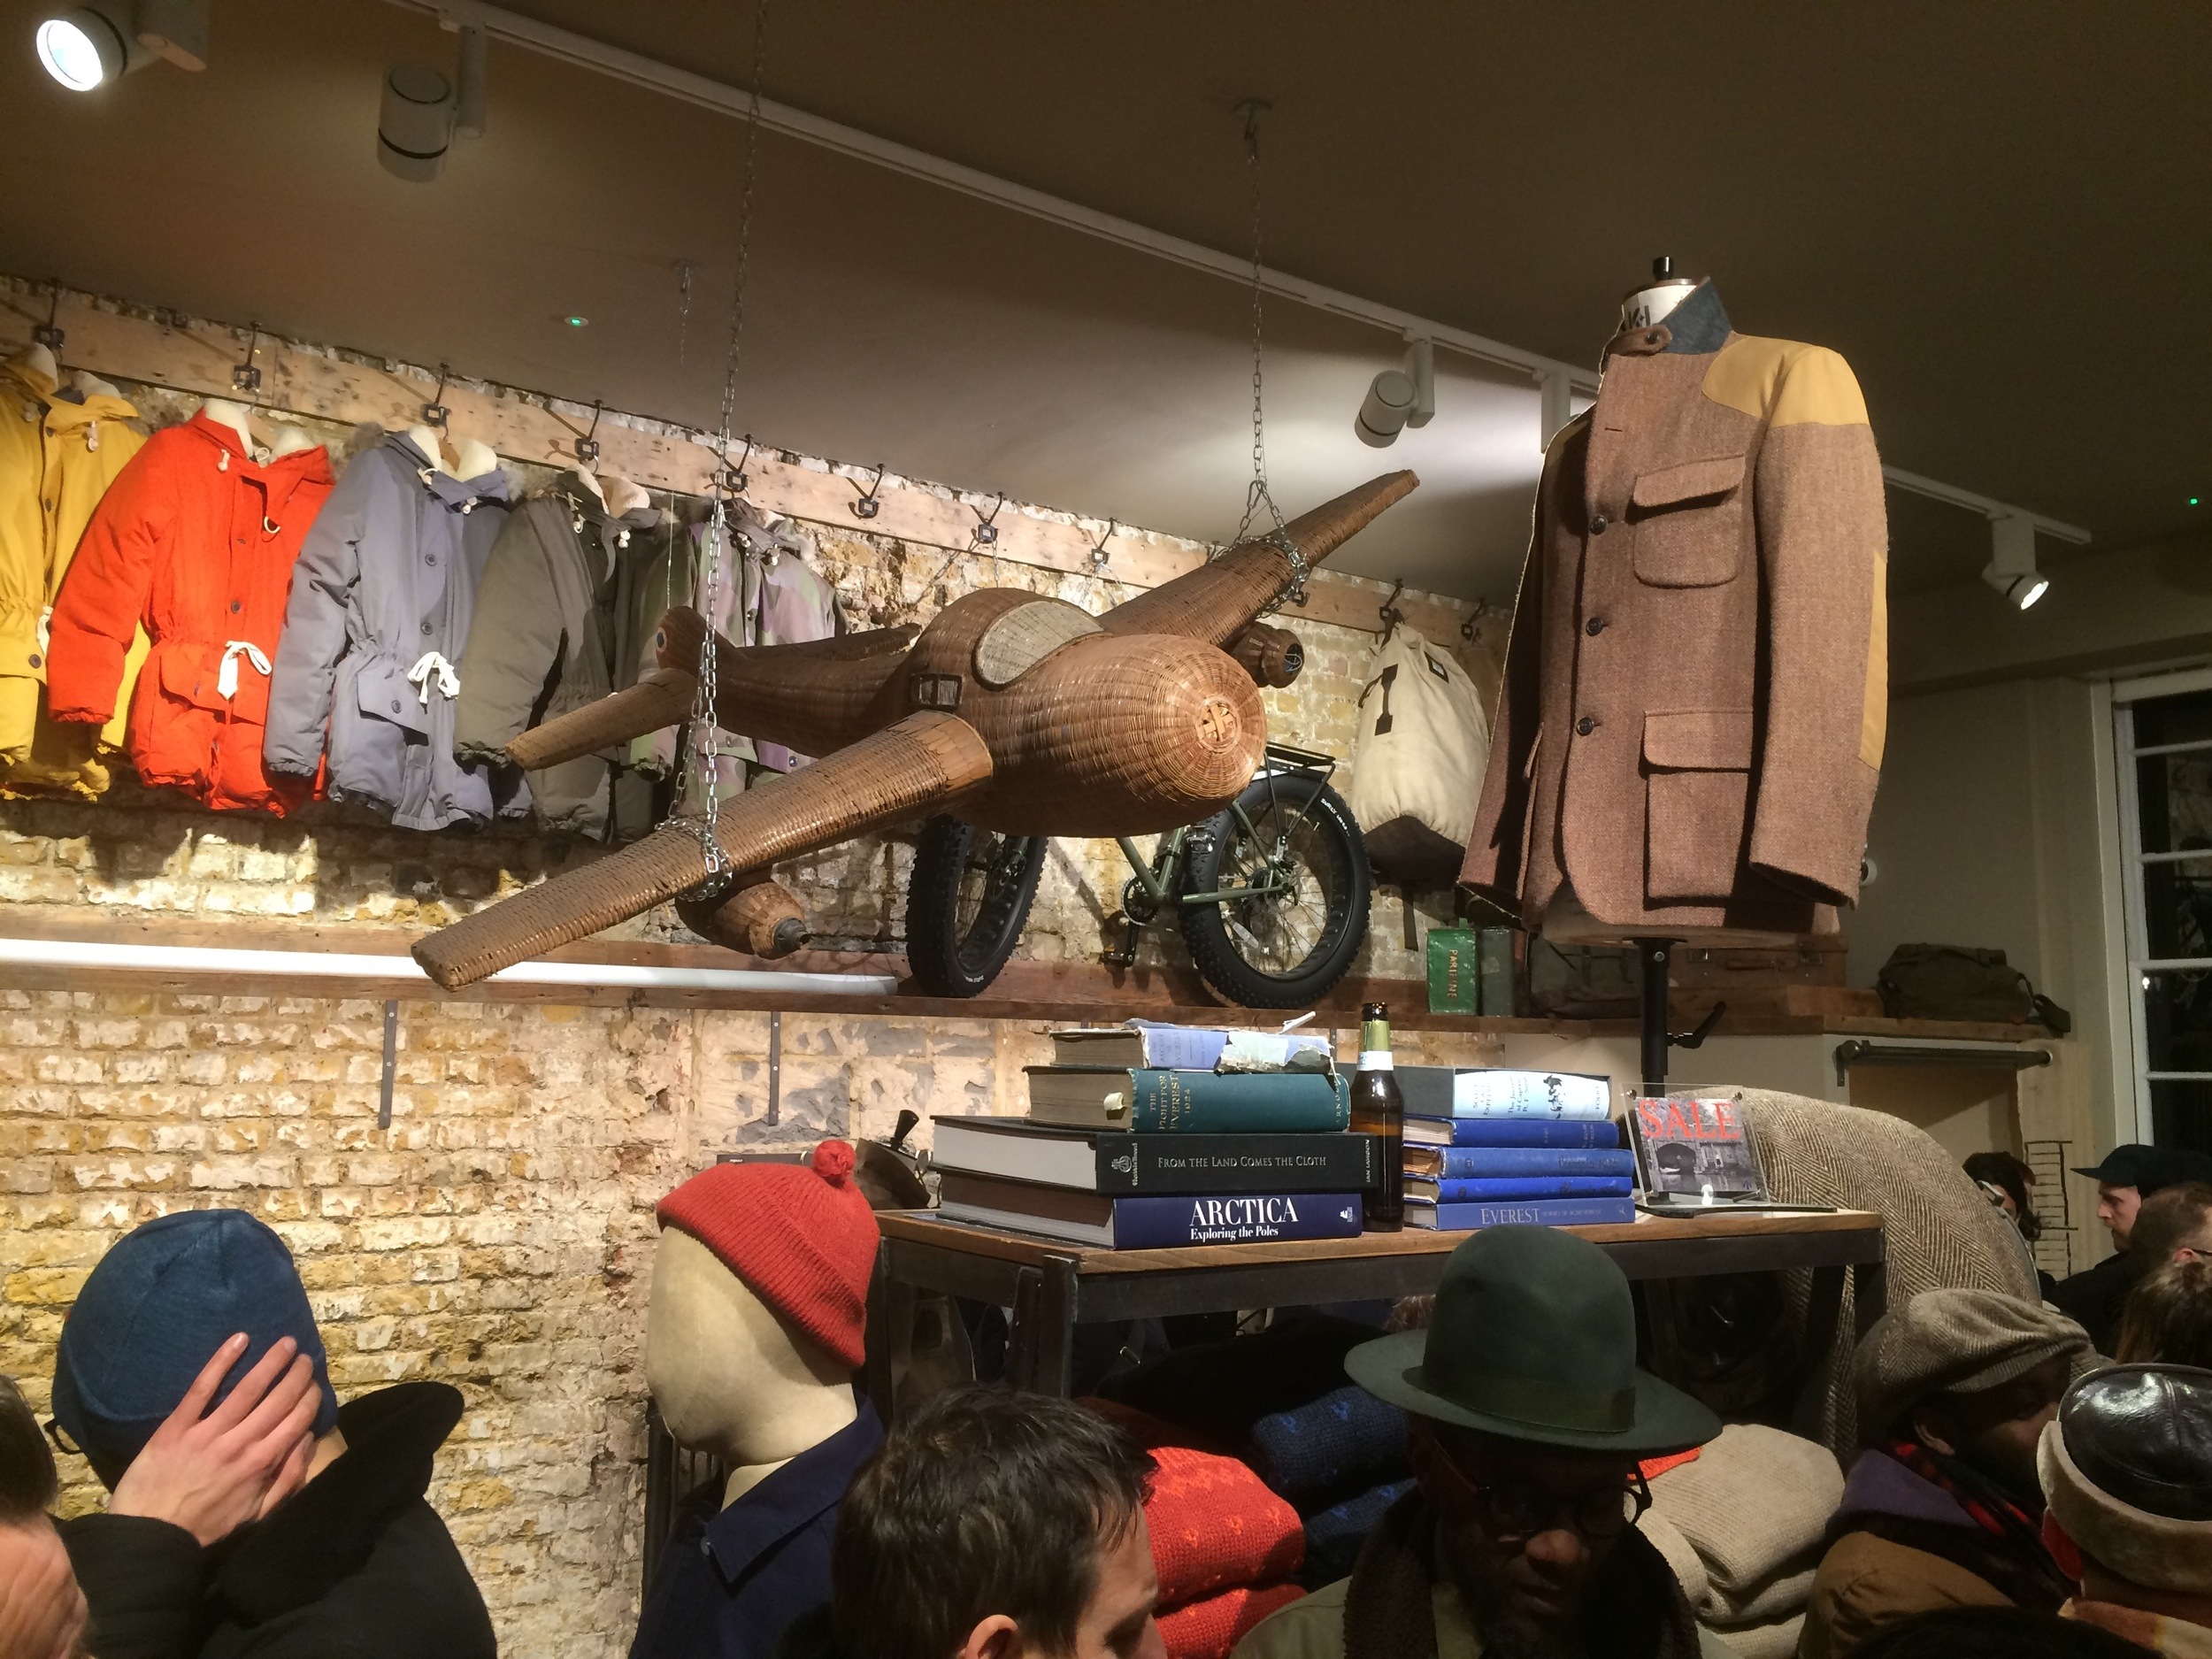 Wicker glider, Mallory classic jacket and Antarctic Parkas hanging on the wall.